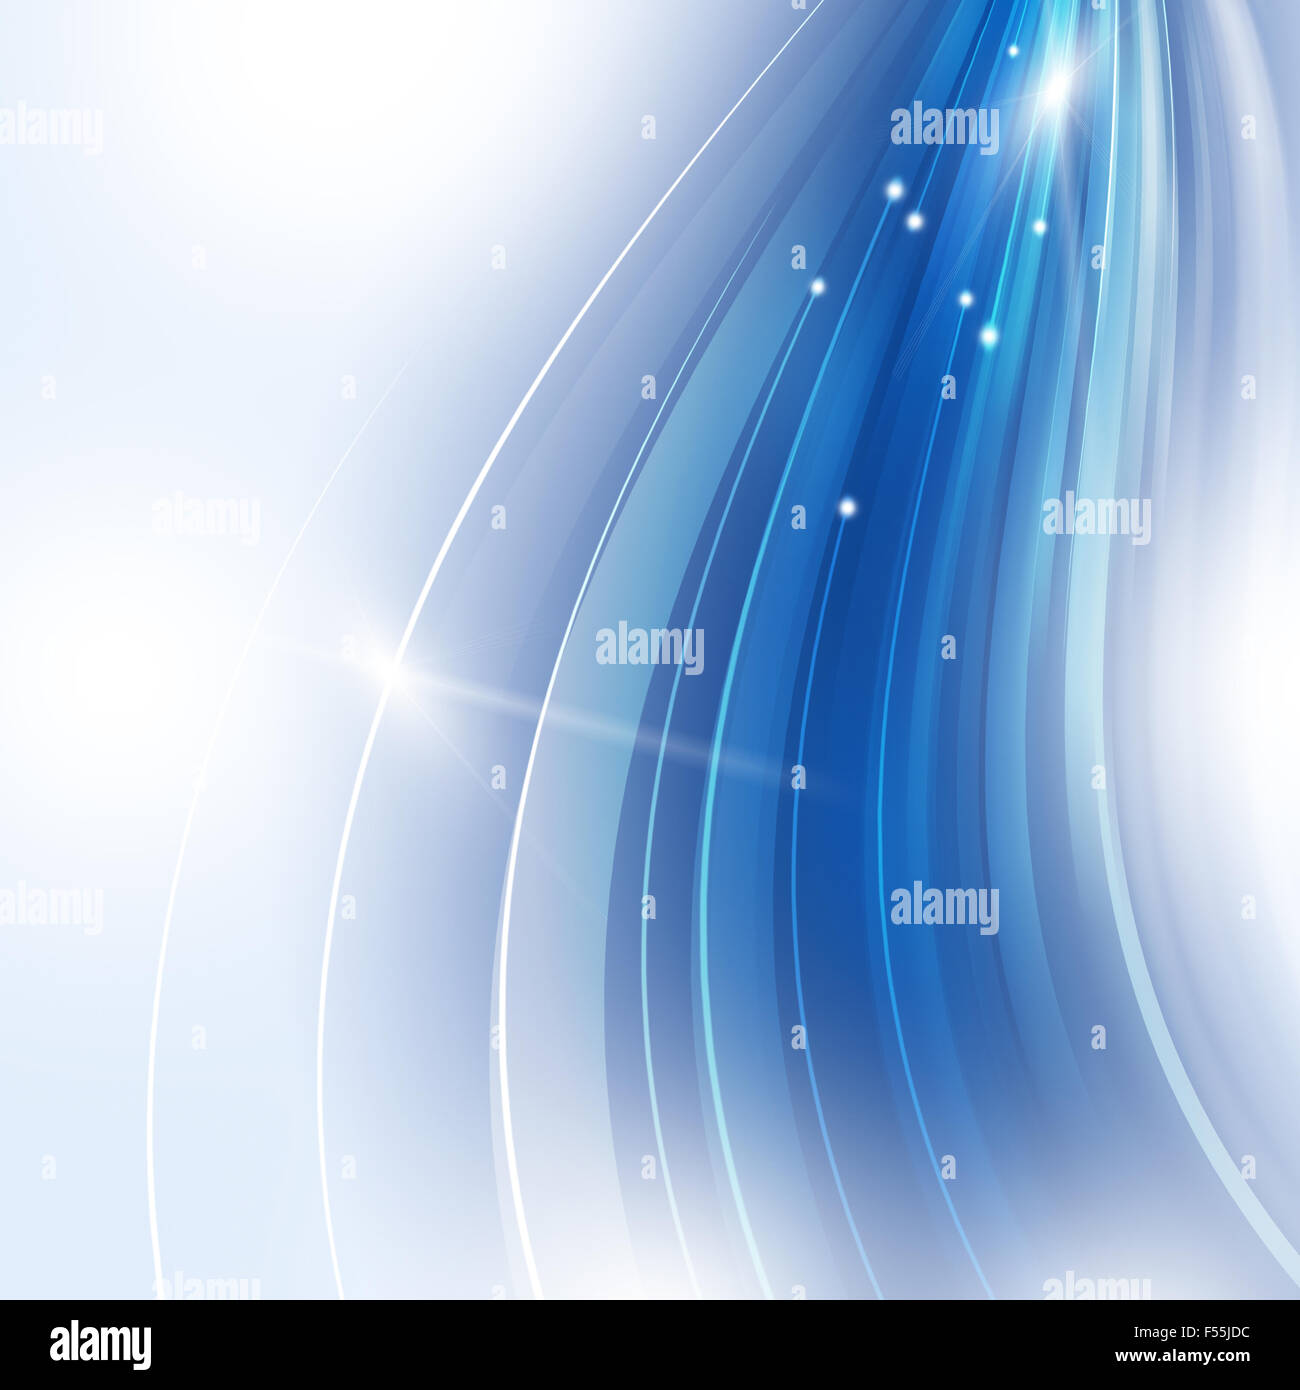 abstract blurred motion graphic technology blue background - Stock Image